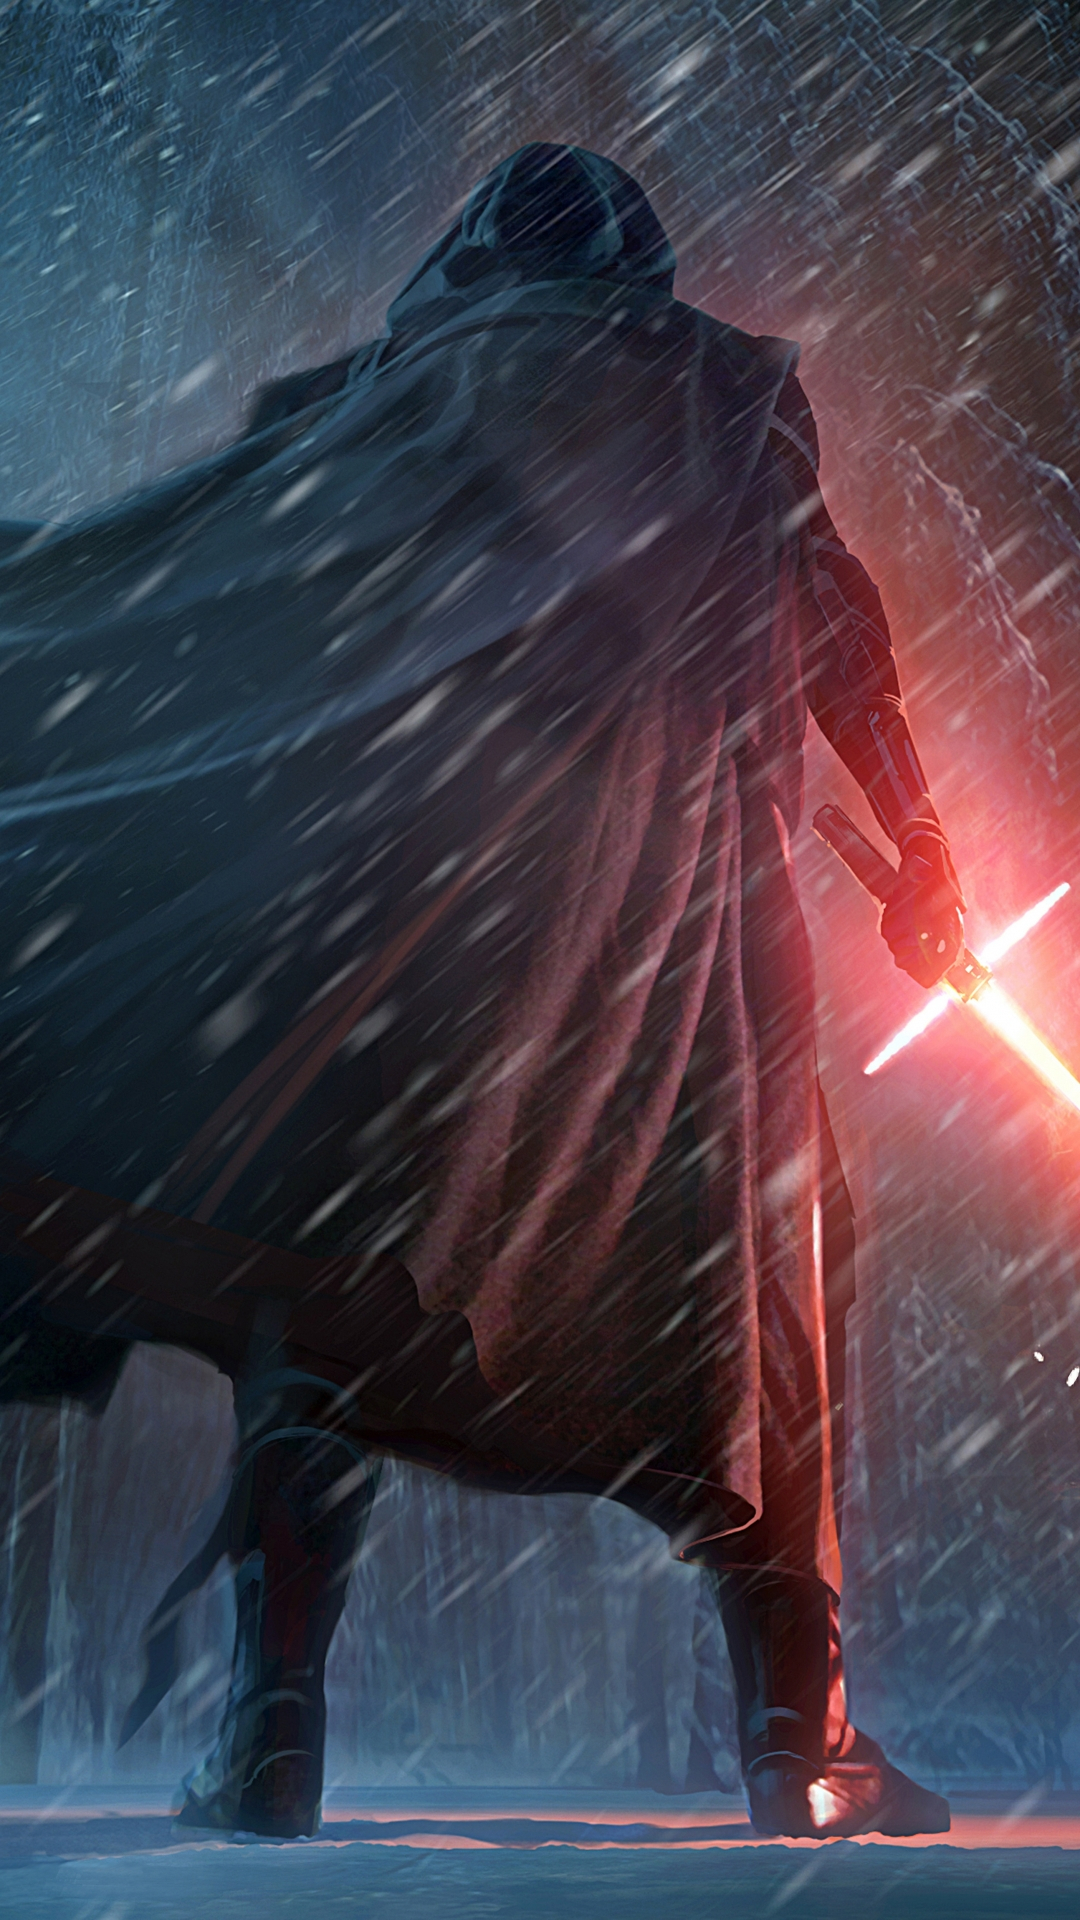 star wars the force awakens iphone wallpapers